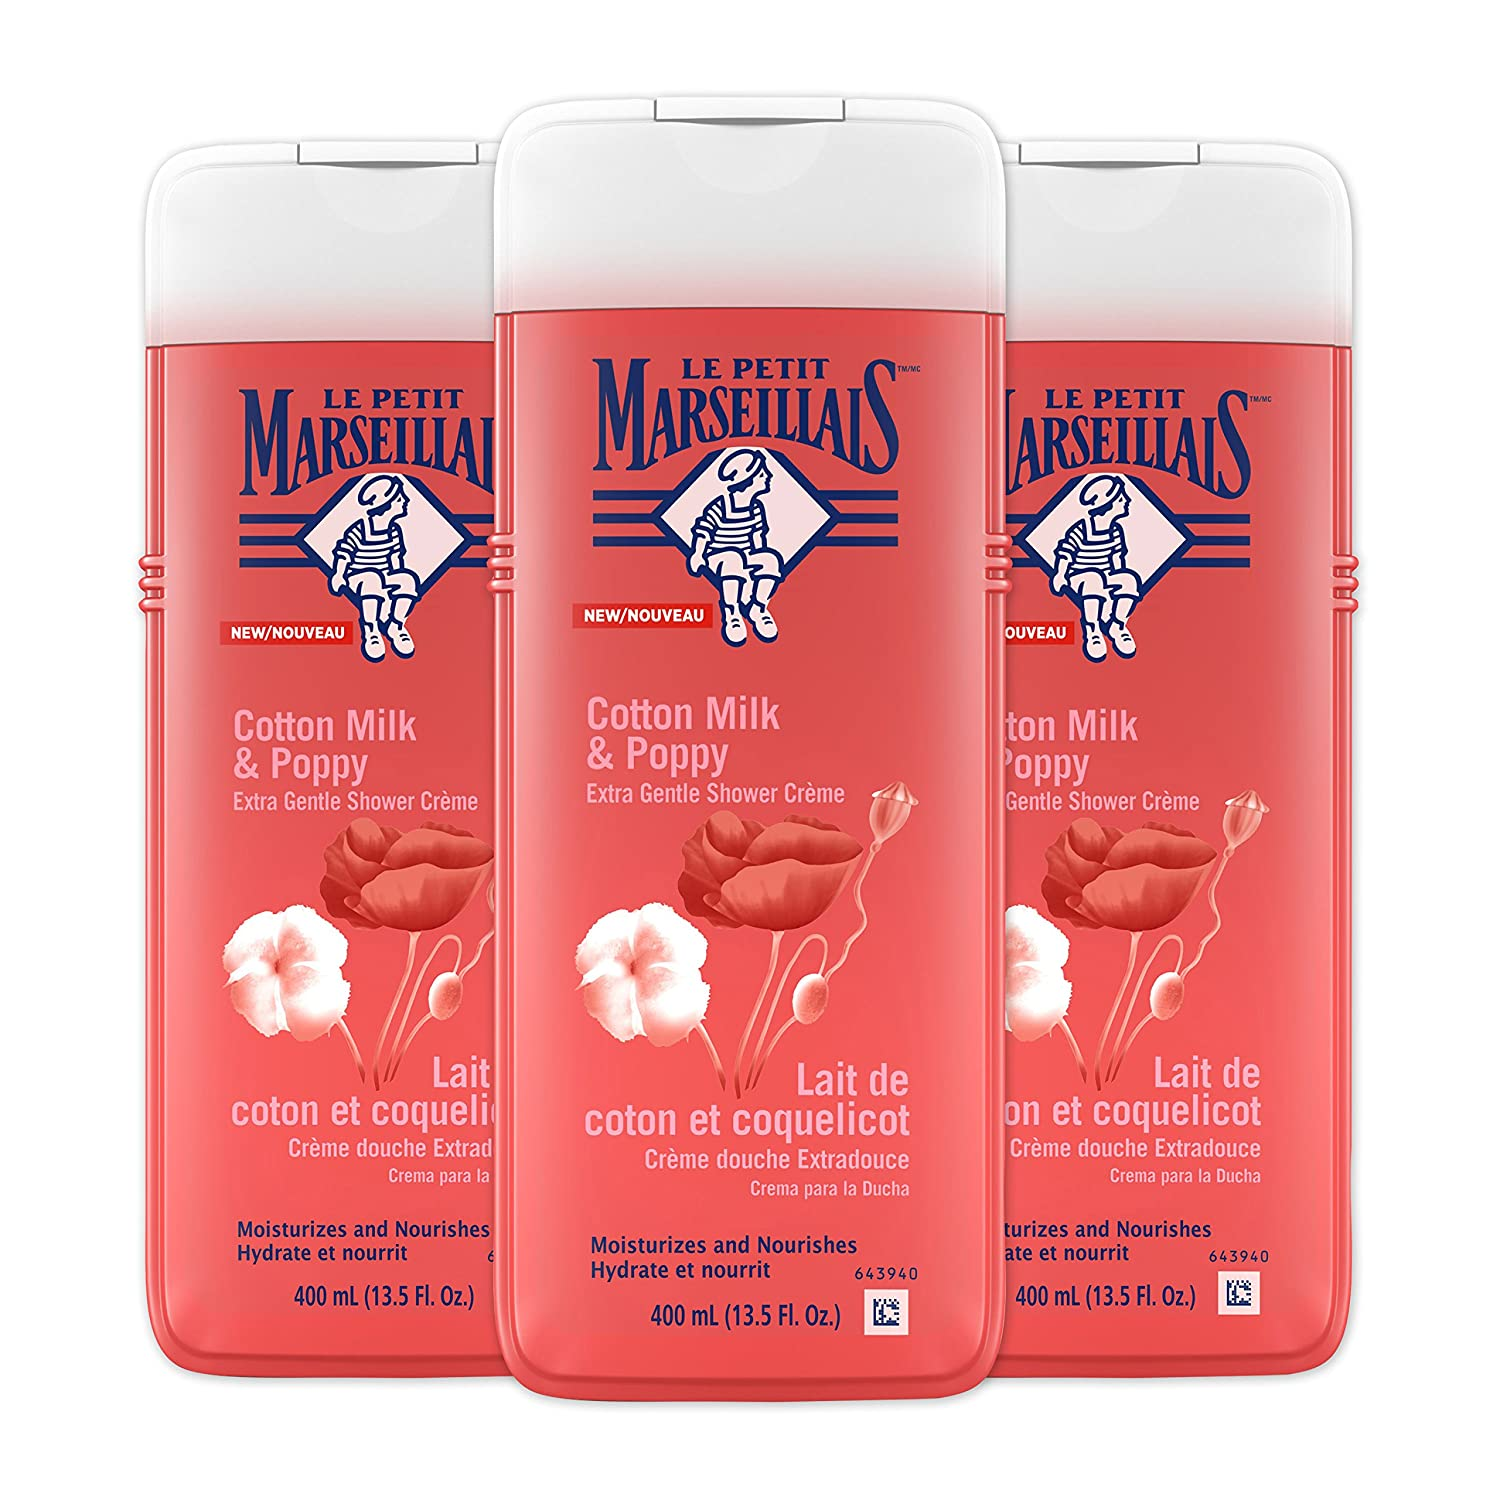 Le Petit Marseillais Extra Gentle Shower Crème with Orange Blossom, Moisturizing & Nourishing French Body Wash for pH Neutral for Skin, 21.9 fl. oz 381371171712